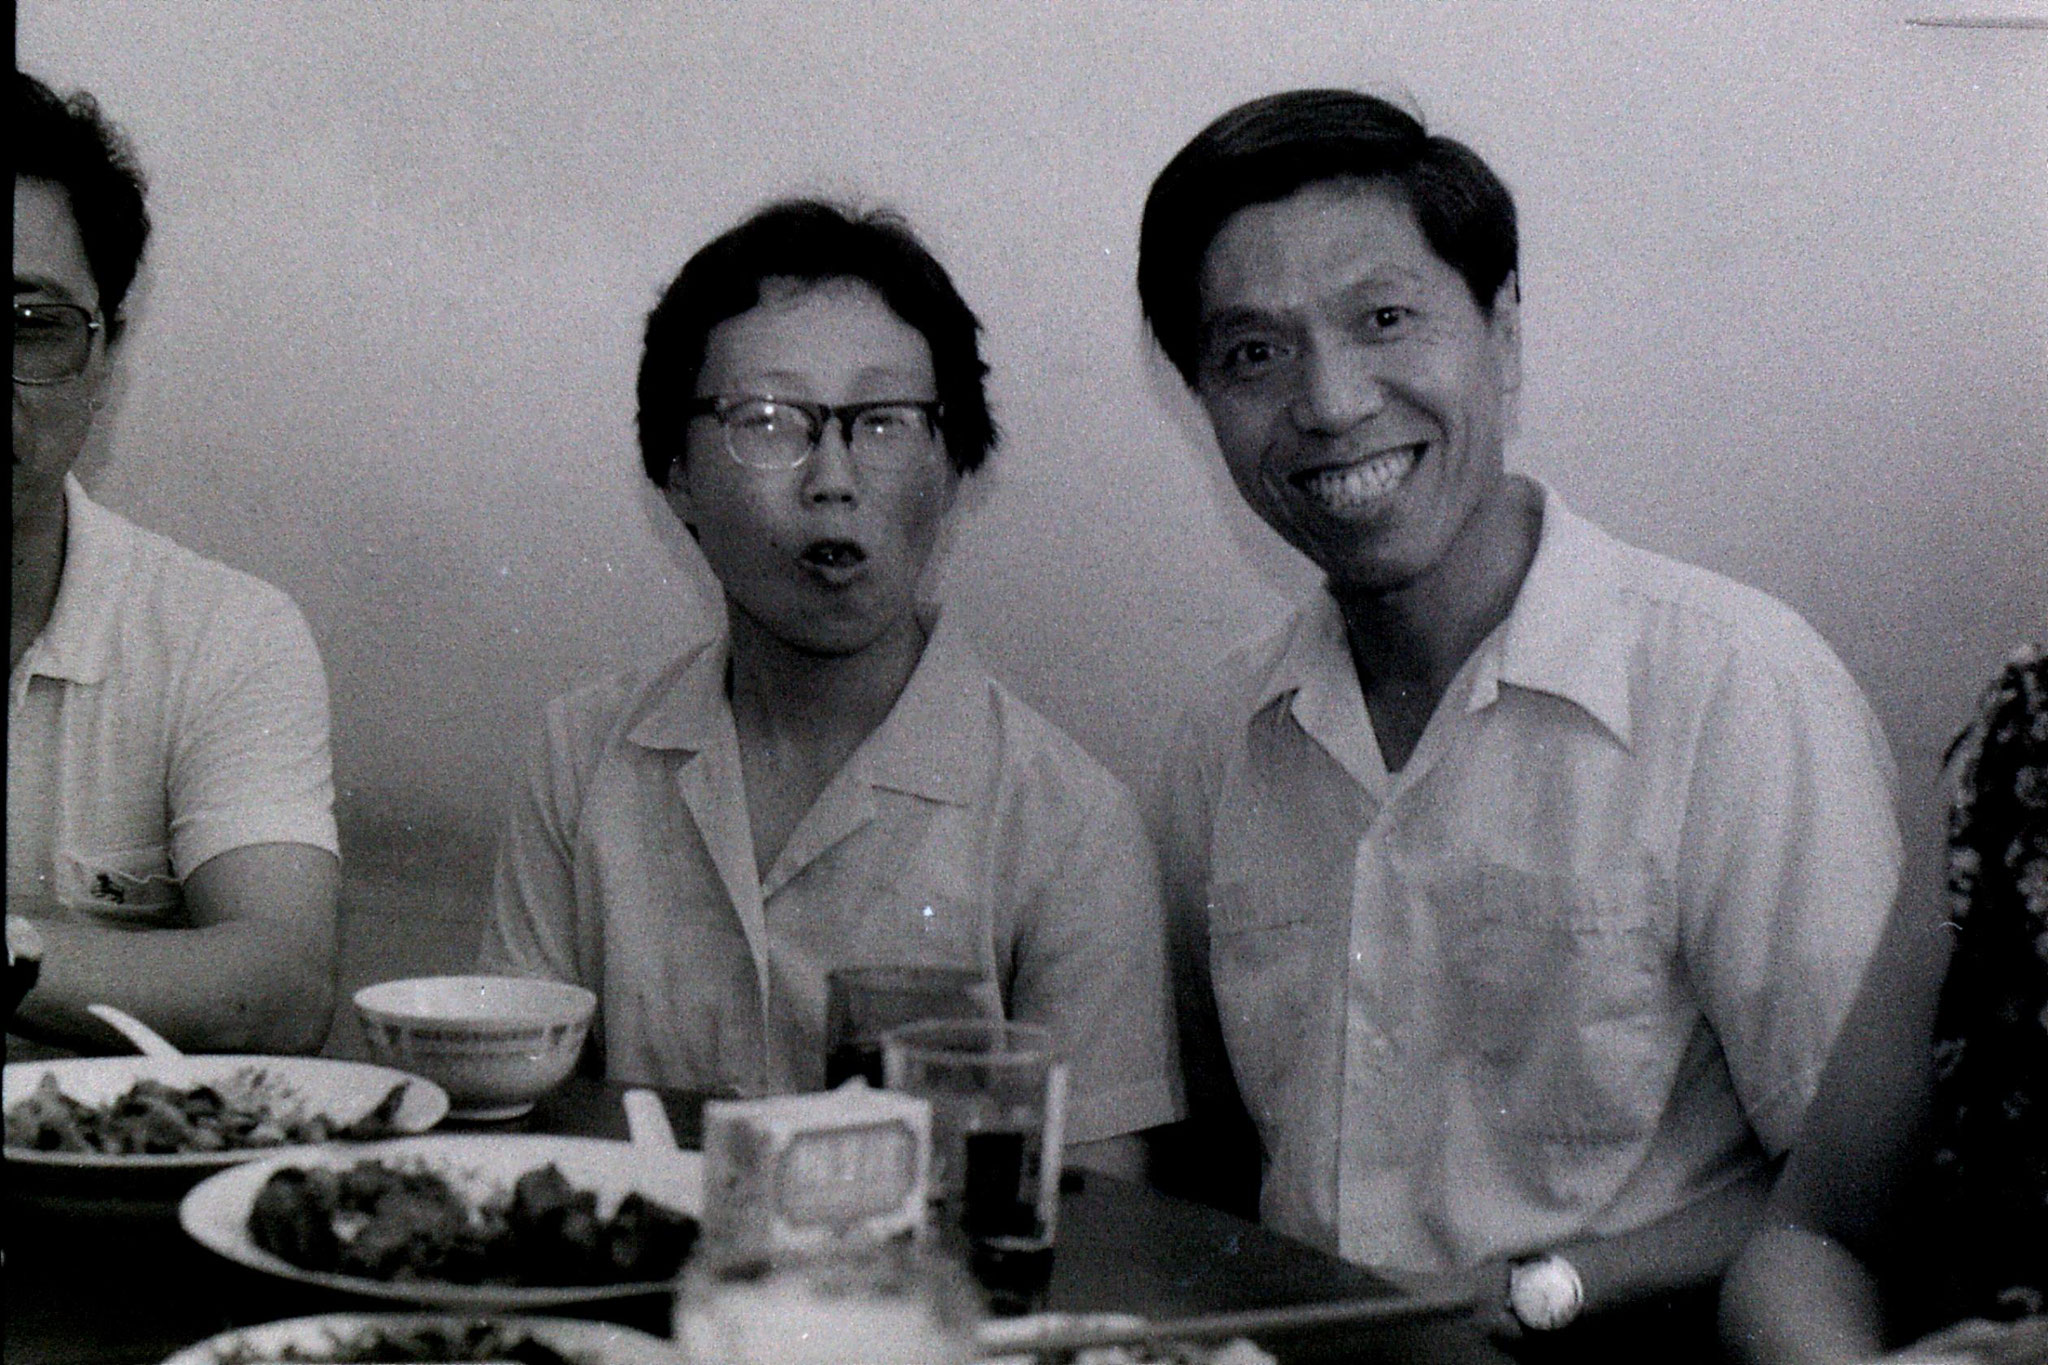 3/7/1989: 10: Shanghai, lunch at Prof. Xu's flat